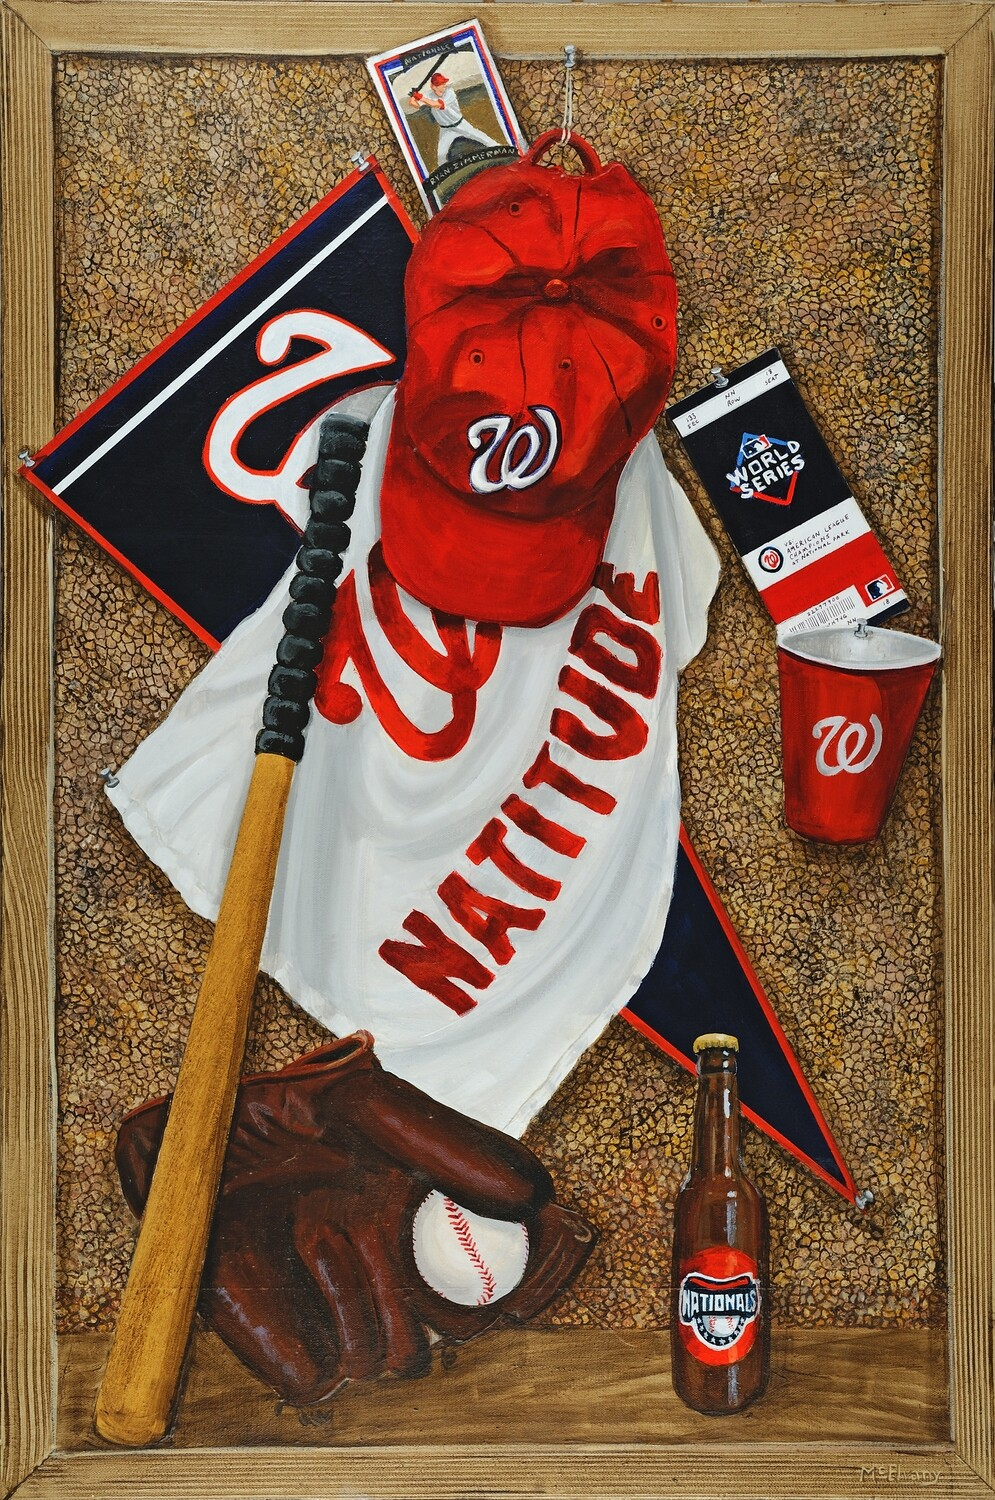 Tribute to the Nationals